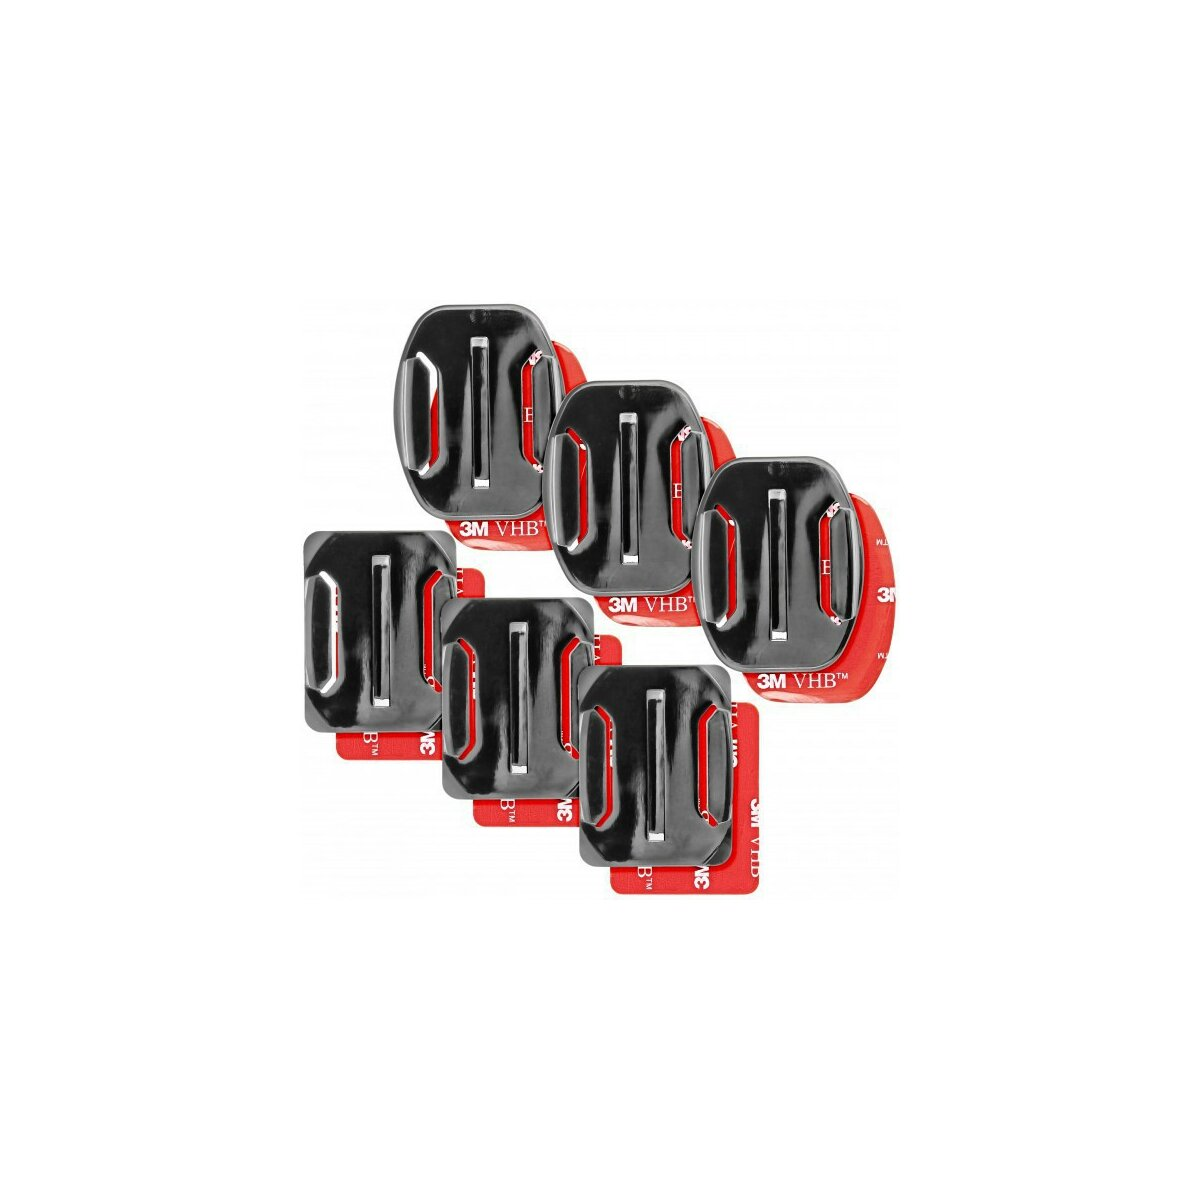 Curved and Straight Glue Holders for GoPro Hero 1, 2 3, 3+ and 4